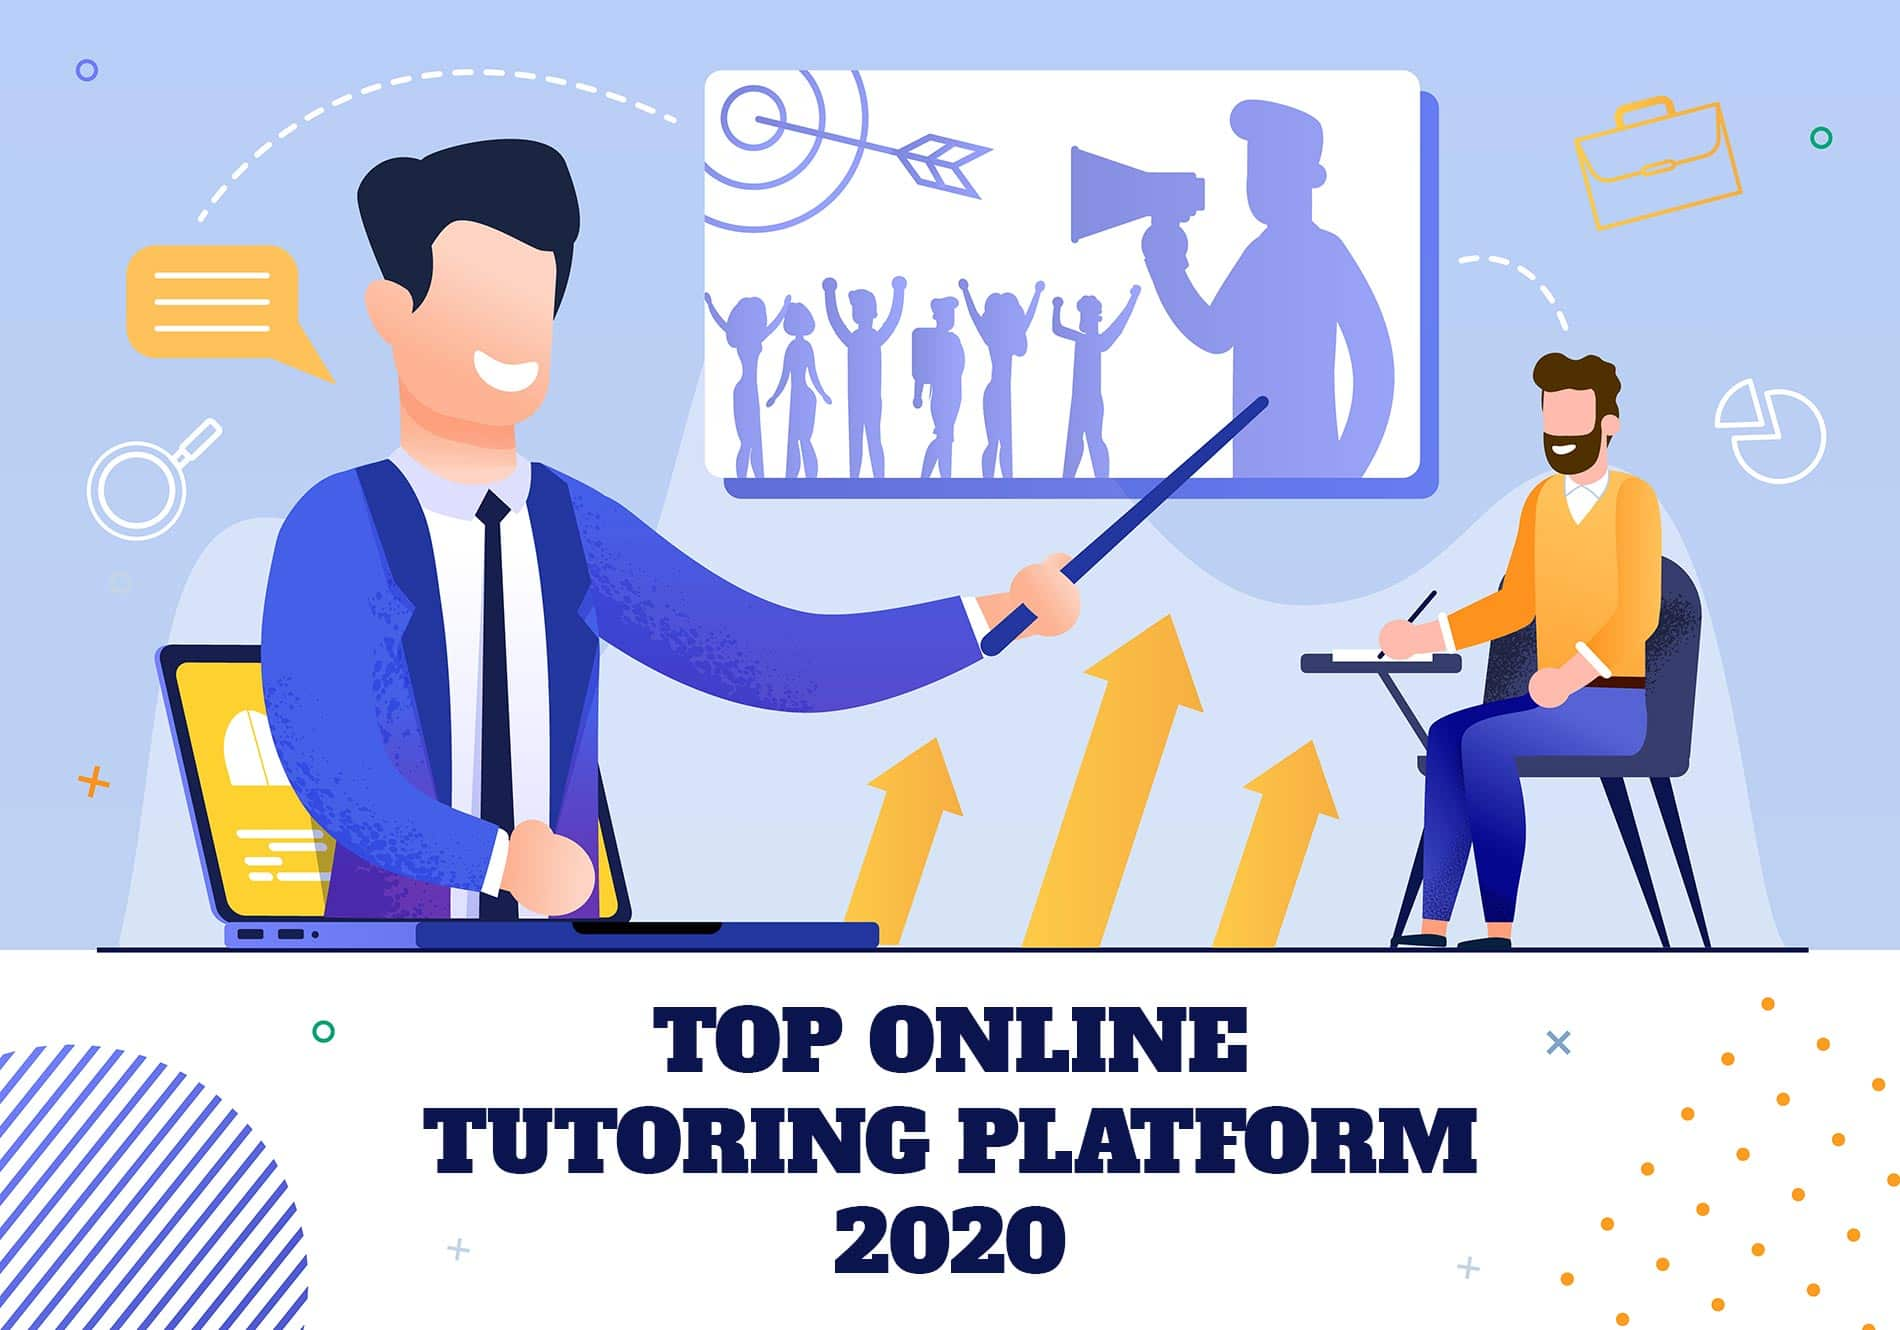 Top websites in 2020 for better learning